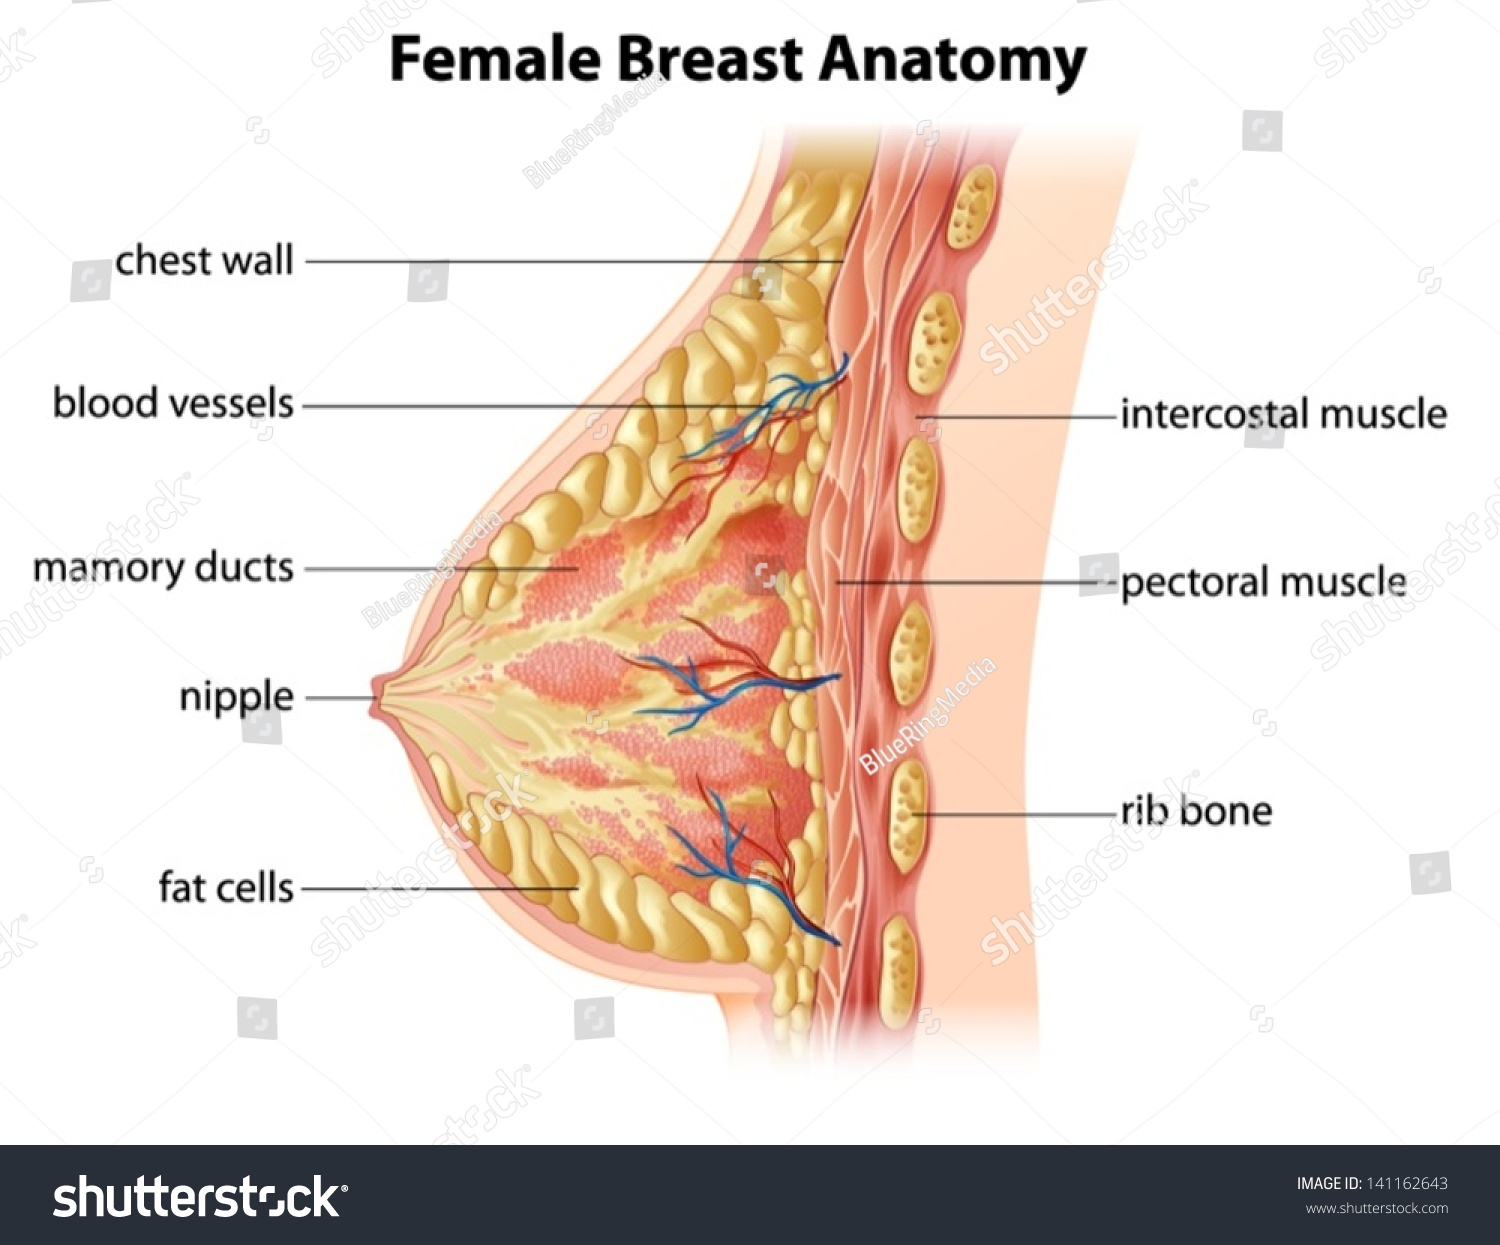 Female Chest Anatomy Diagram - Search For Wiring Diagrams •